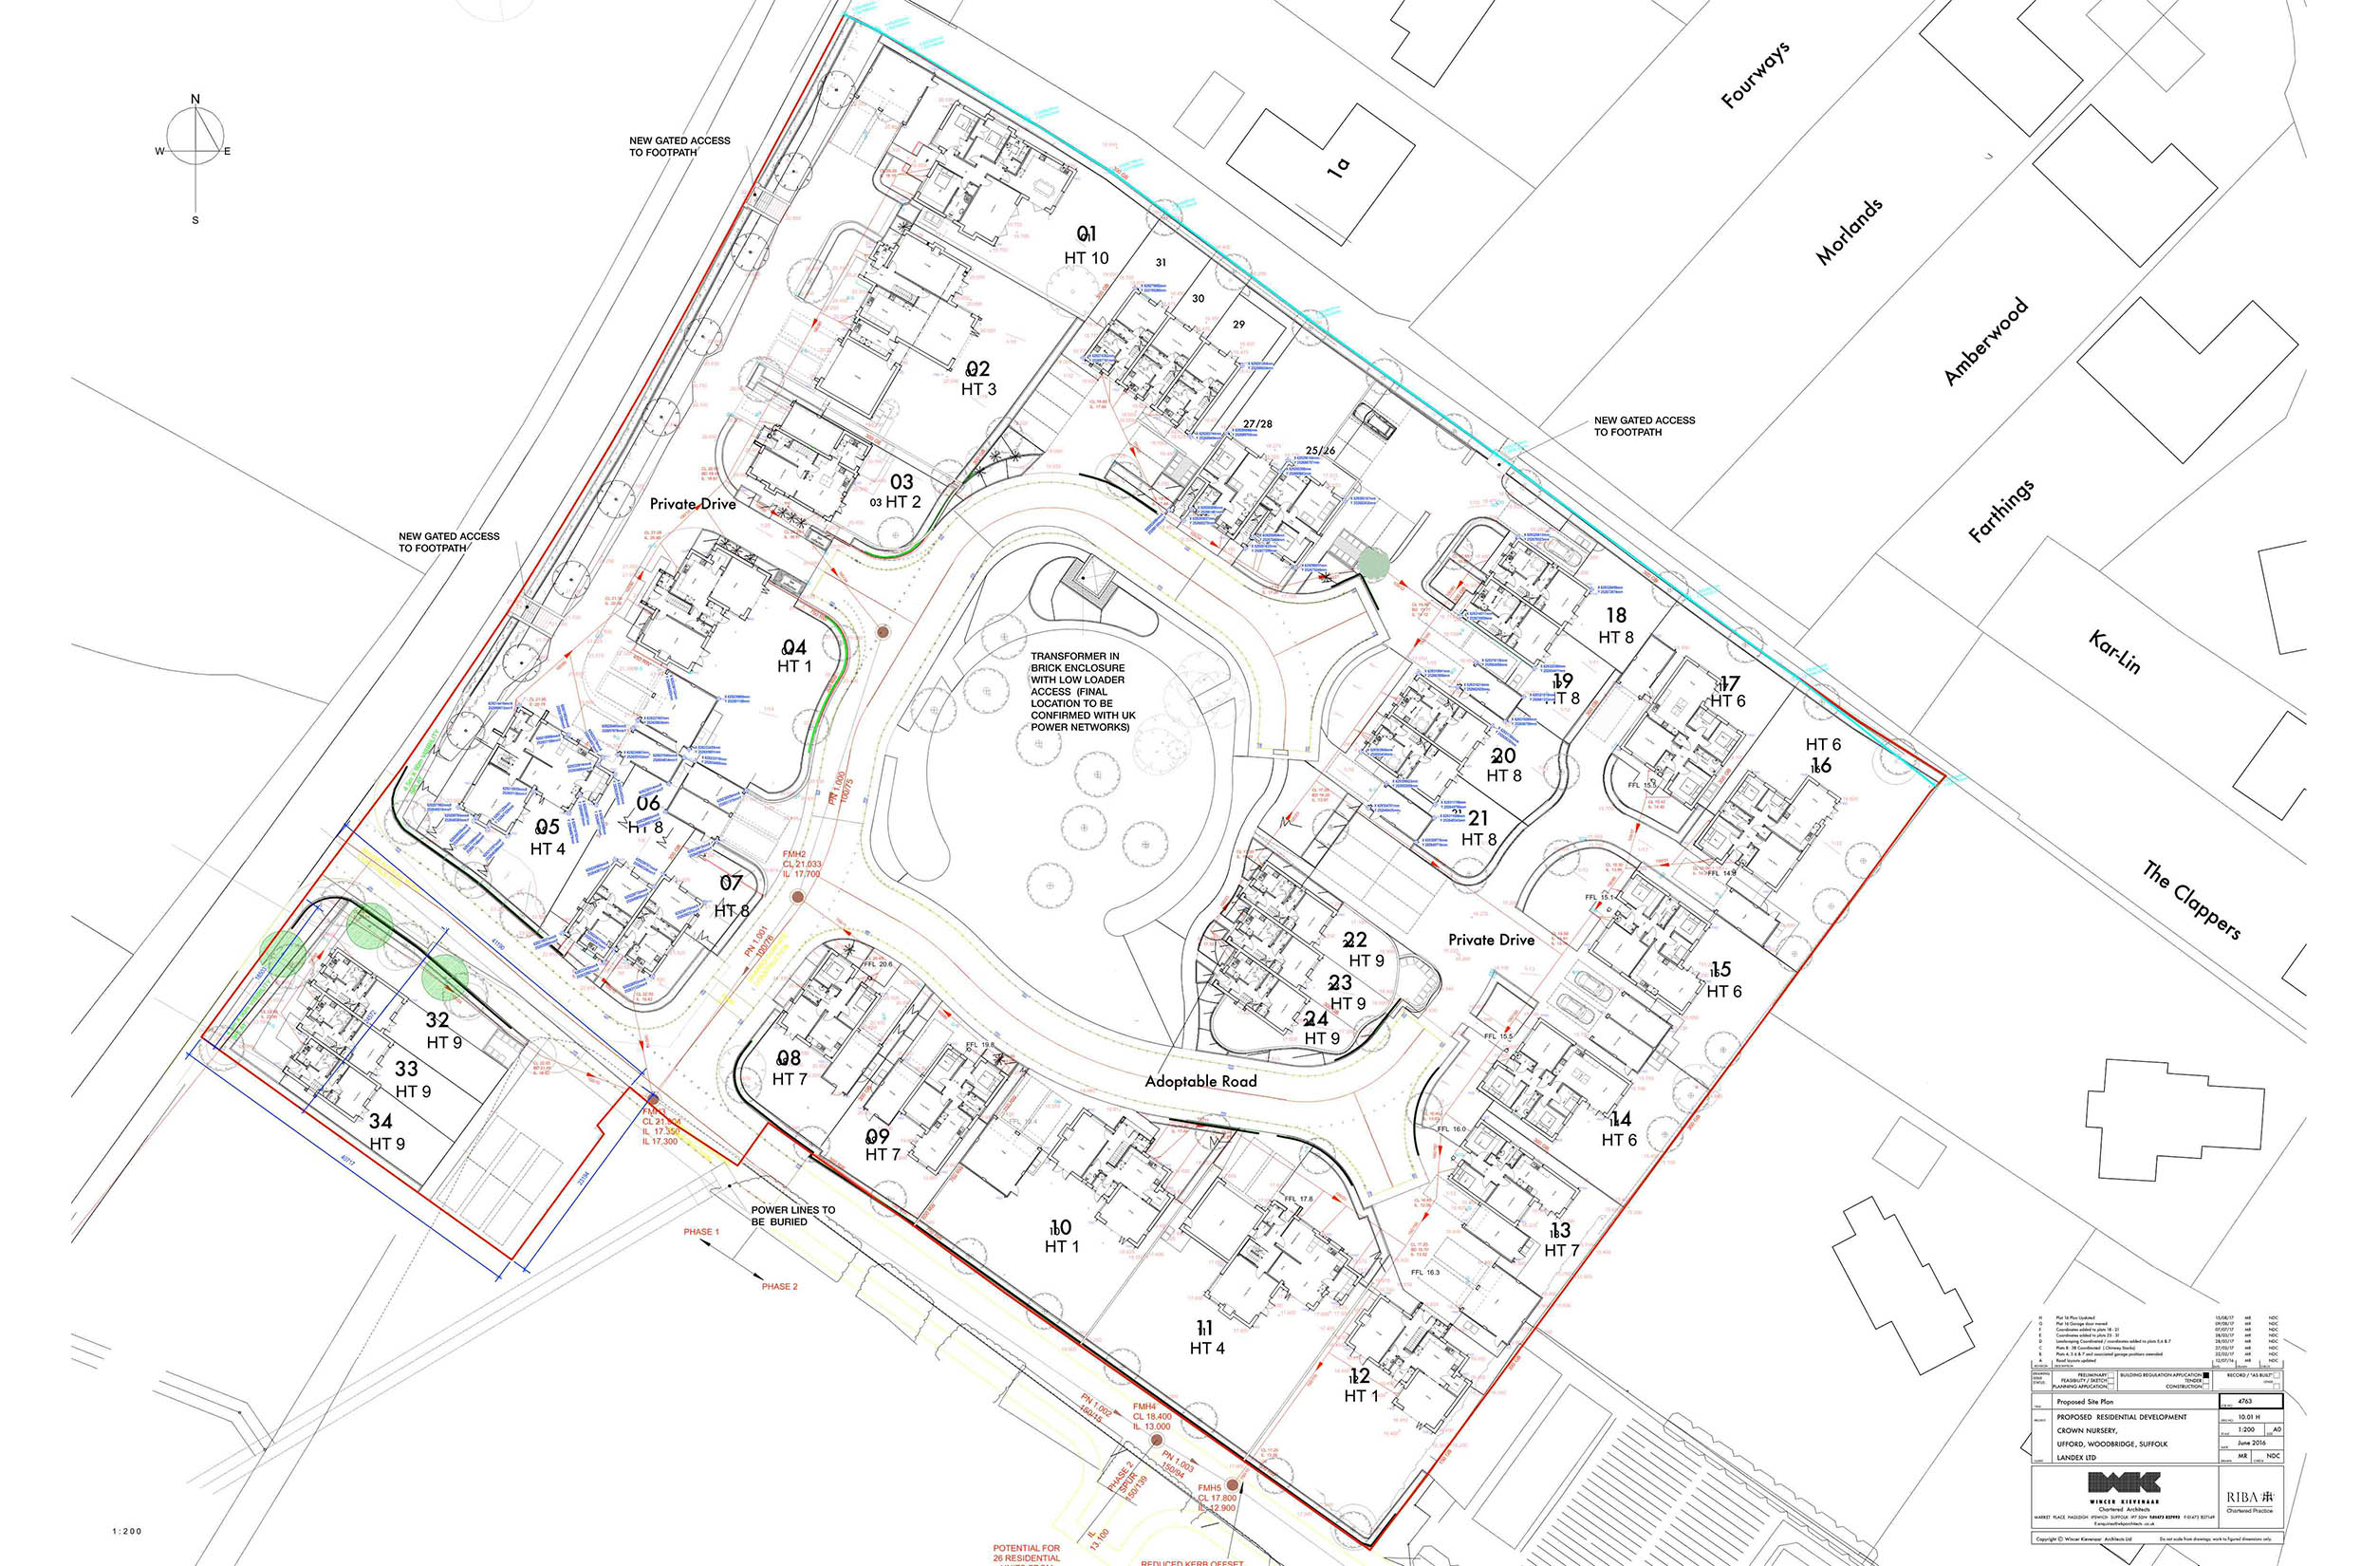 Image of the Ufford Site Plan